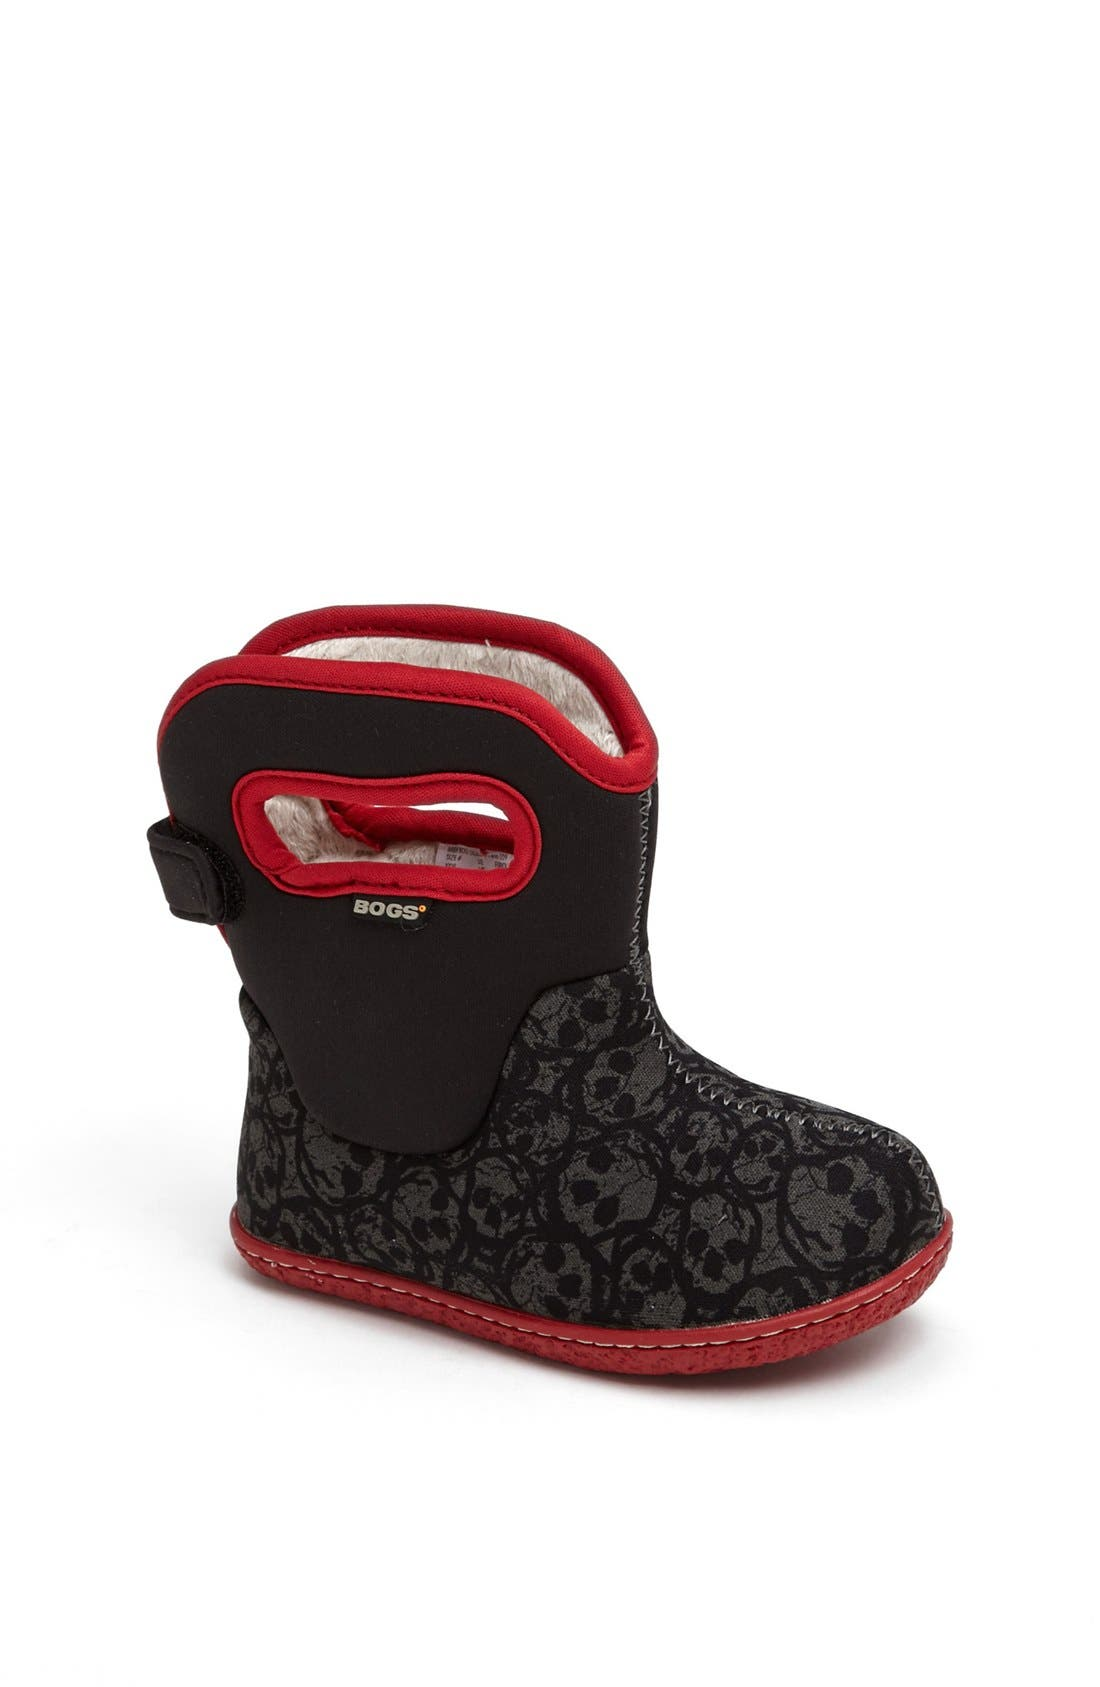 Alternate Image 1 Selected - Bogs 'Baby Bogs - Skulls' Waterproof Boot (Baby, Walker & Toddler)